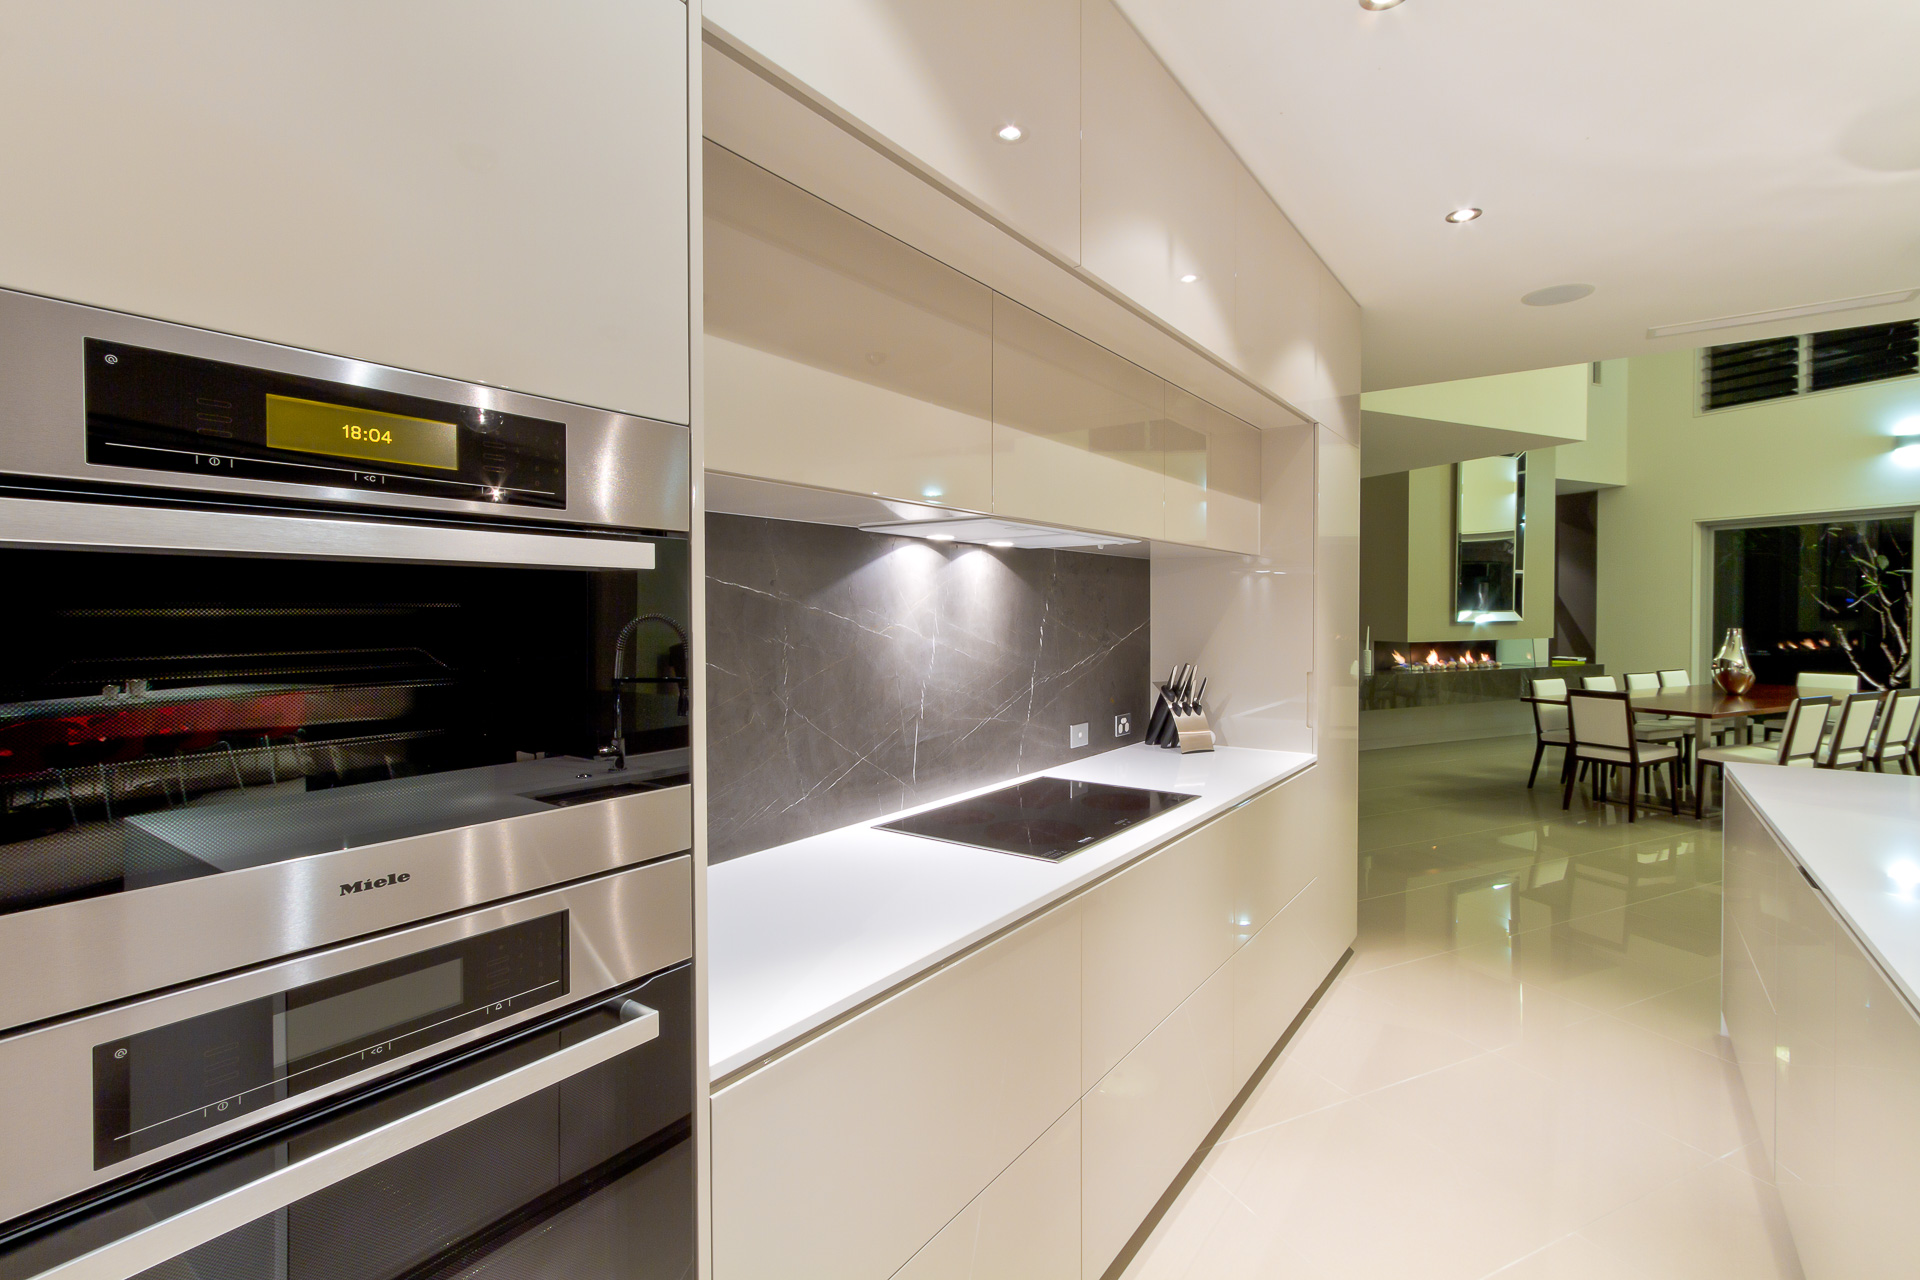 Kitchen, modern, gloss, 2 pack, pietra, Marble, miele, vintec, Caesarstone, Minka joinery, luxury, Coolum